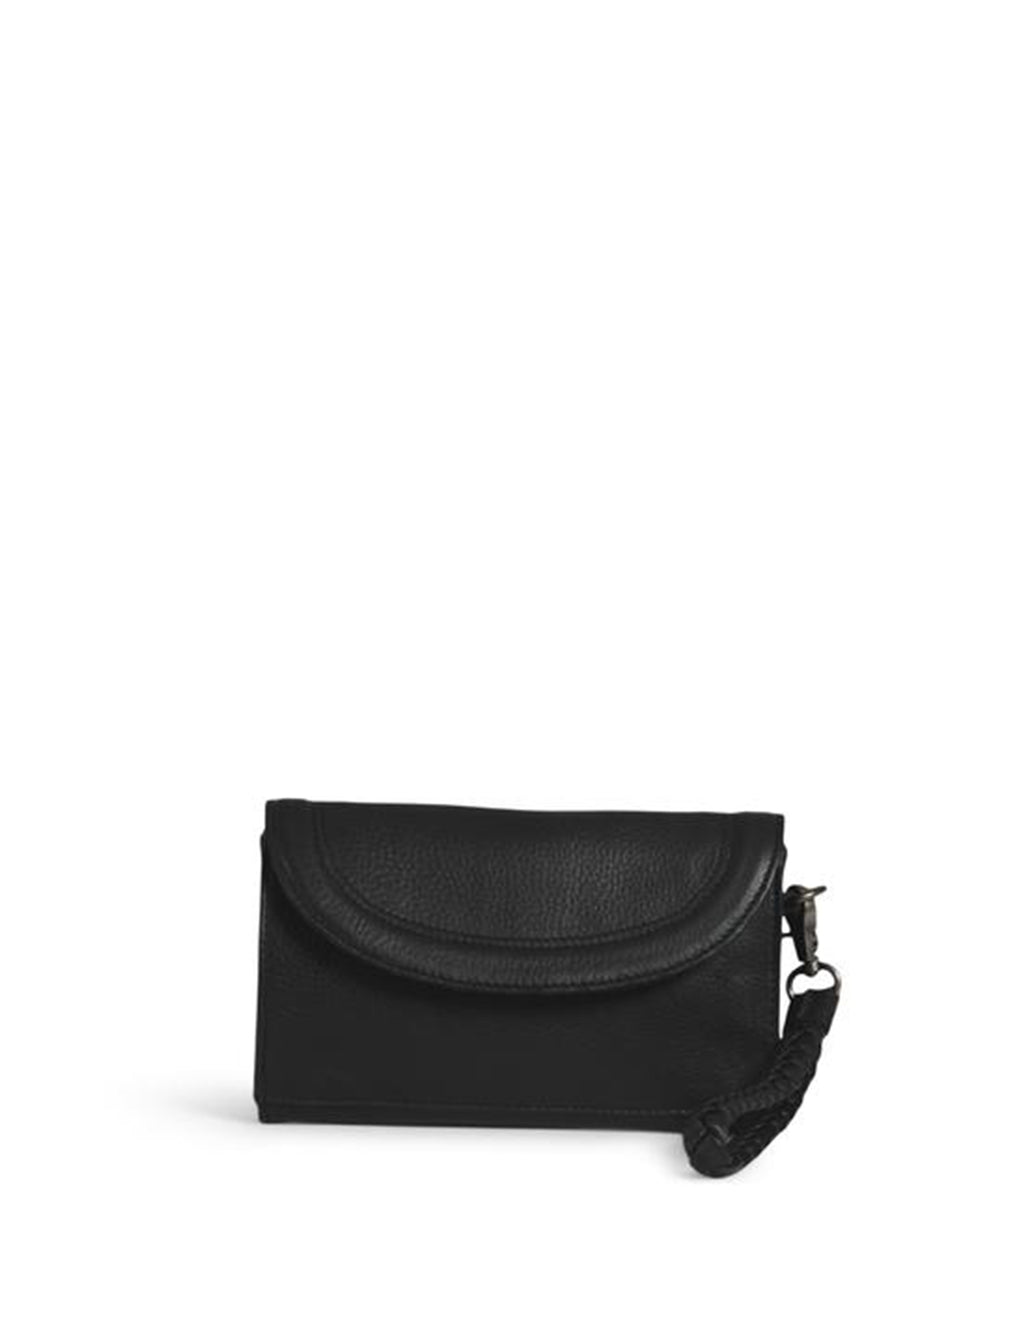 Day & Mood India Wallet, Black